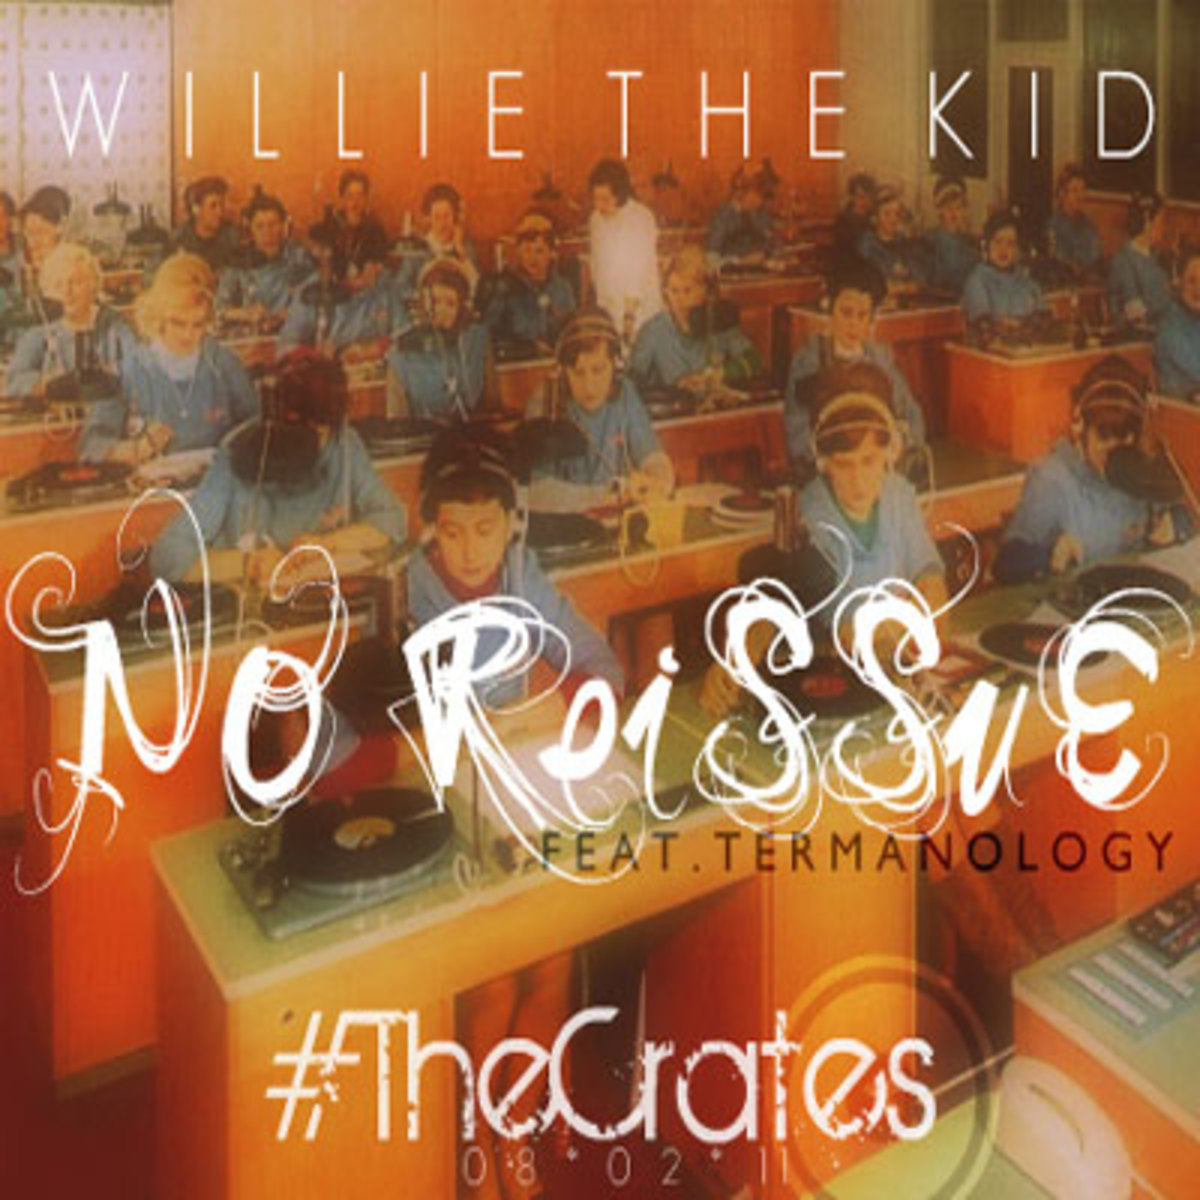 williethekid-noreissue.jpg